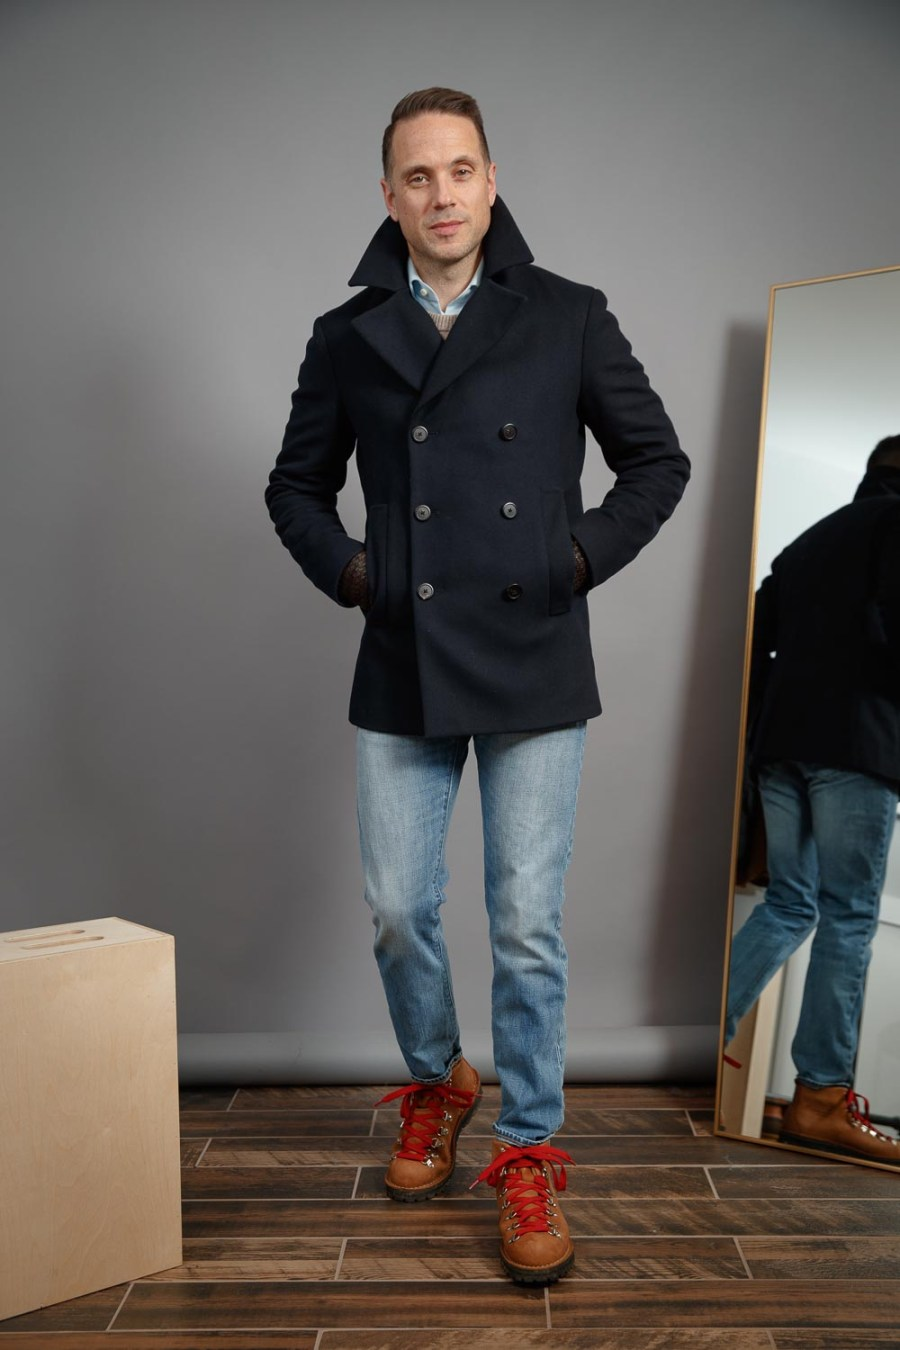 Navy-Peacoat-light-wash-jeans-boots-mens-winter-style-2021